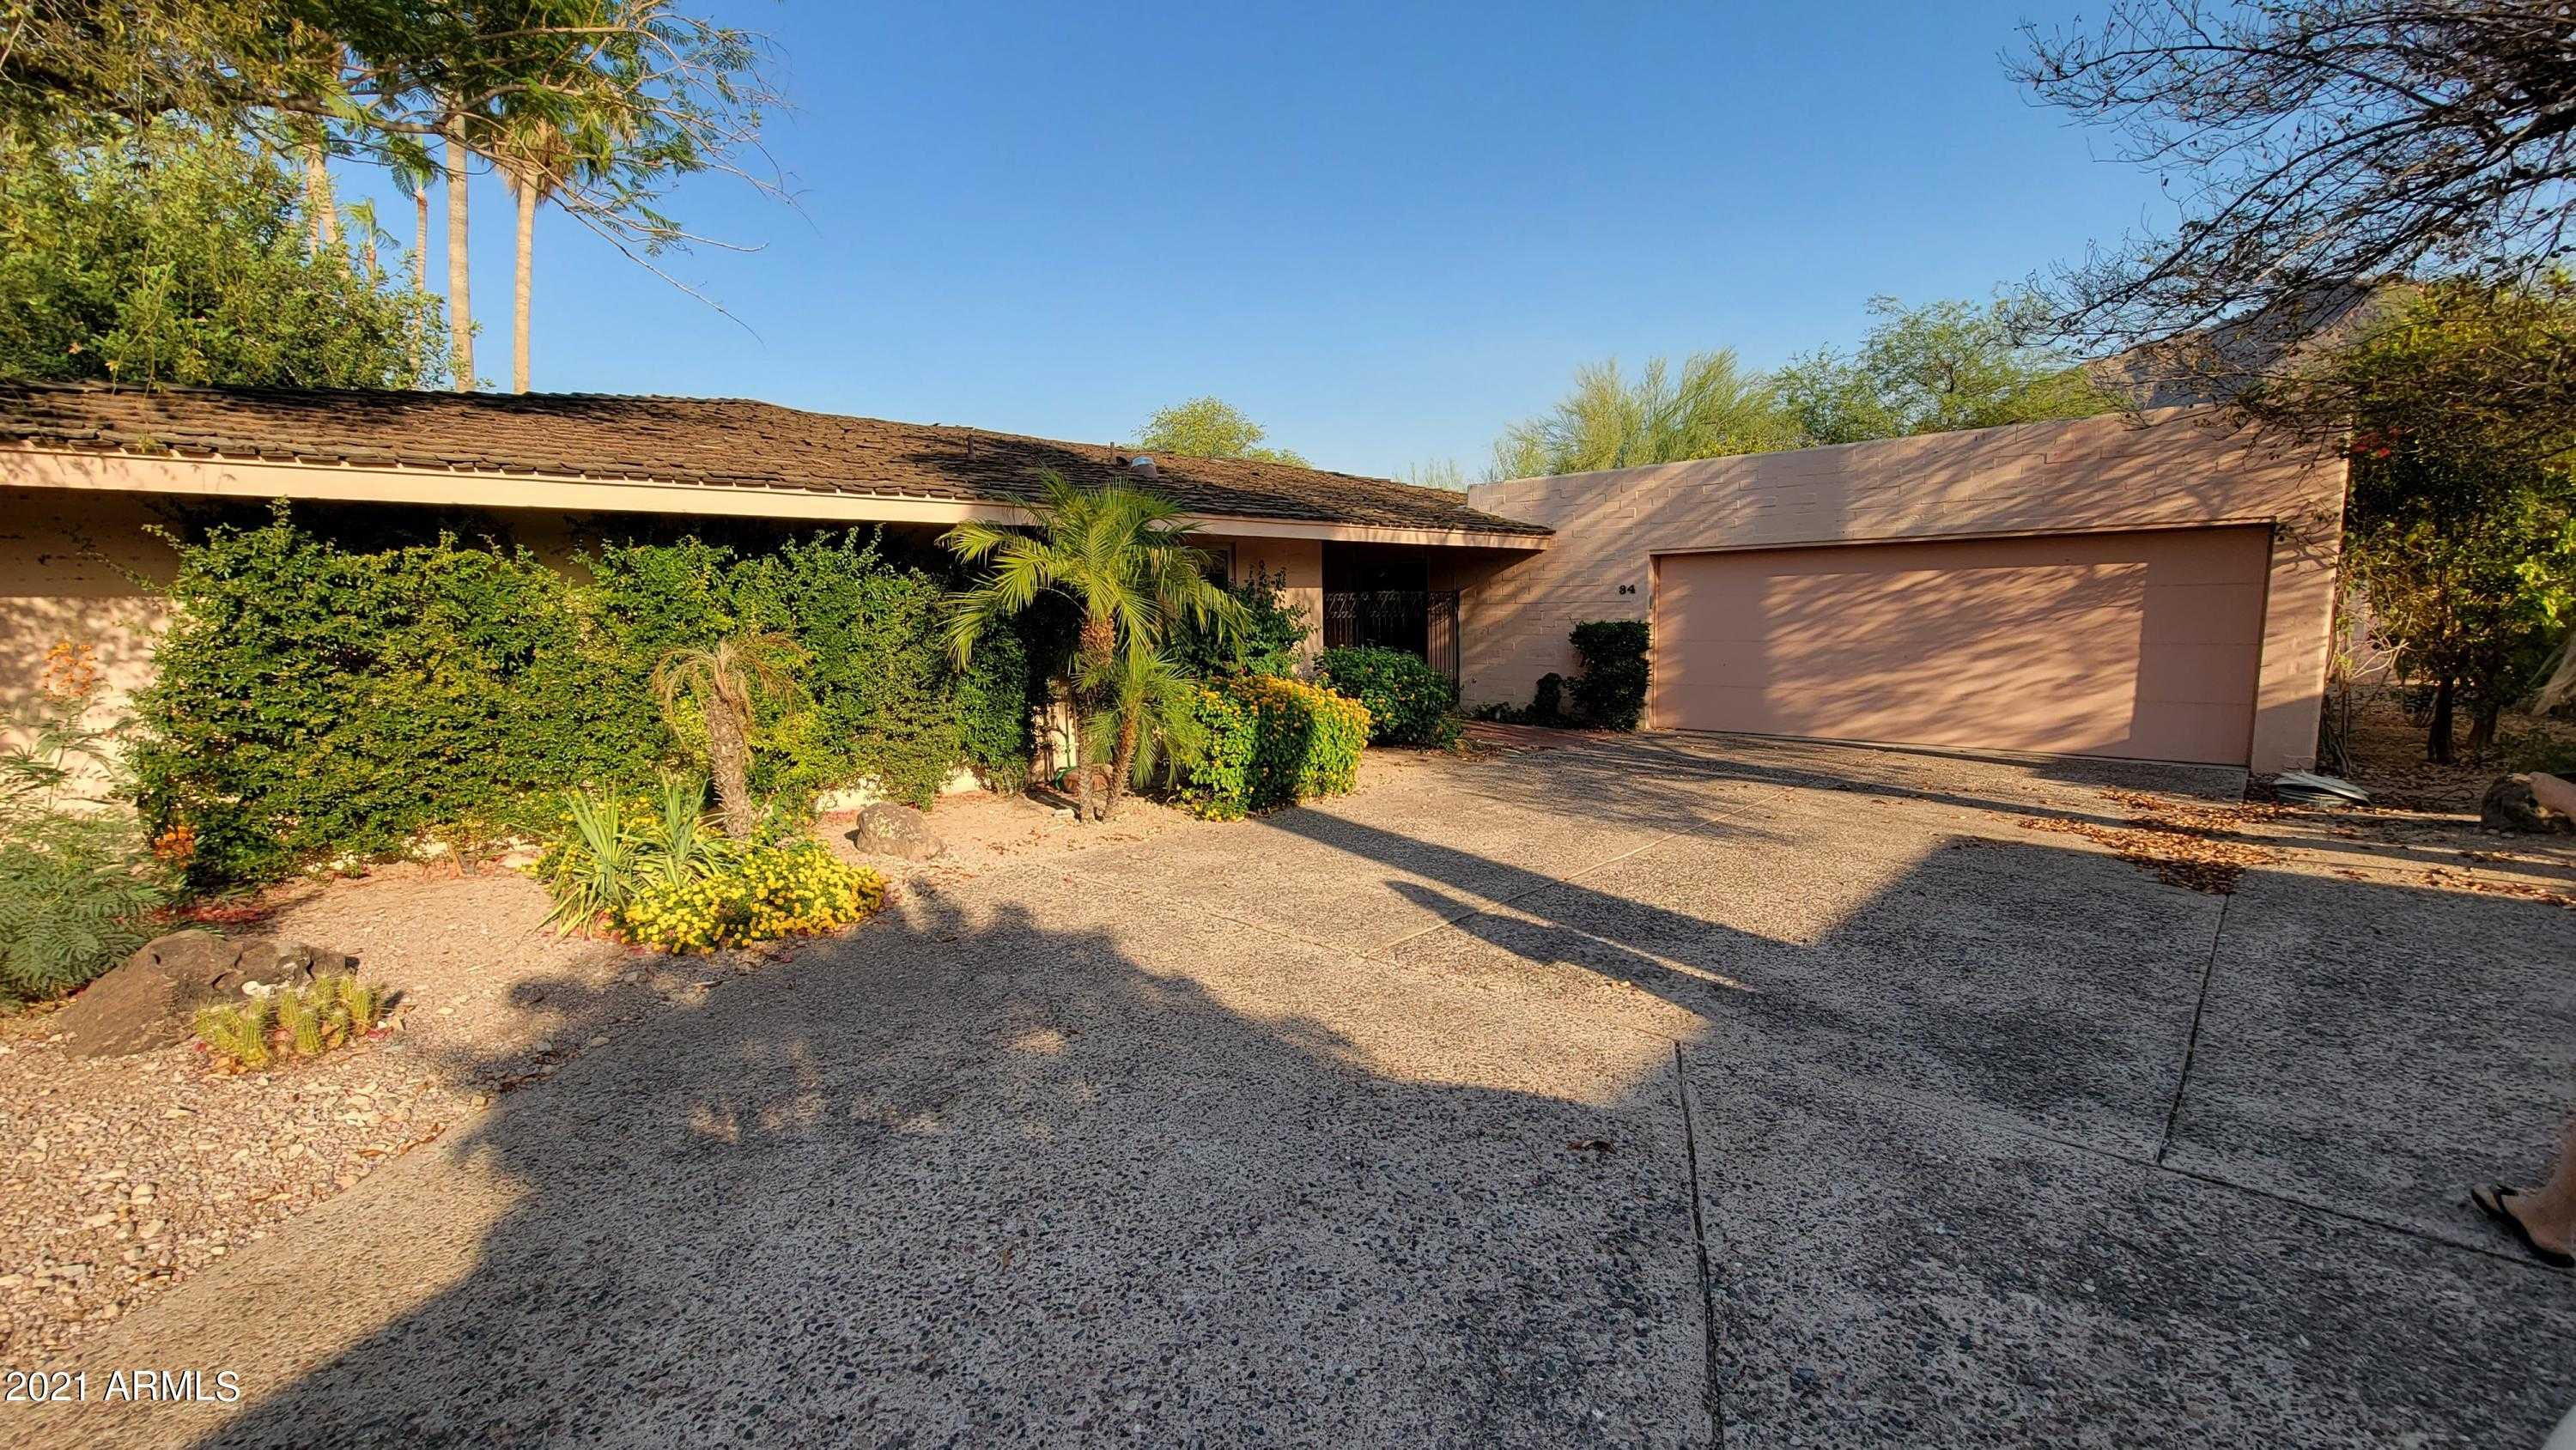 $1,640,000 - 2Br/2Ba - Home for Sale in Colonia Miramonte Unit 2, Paradise Valley